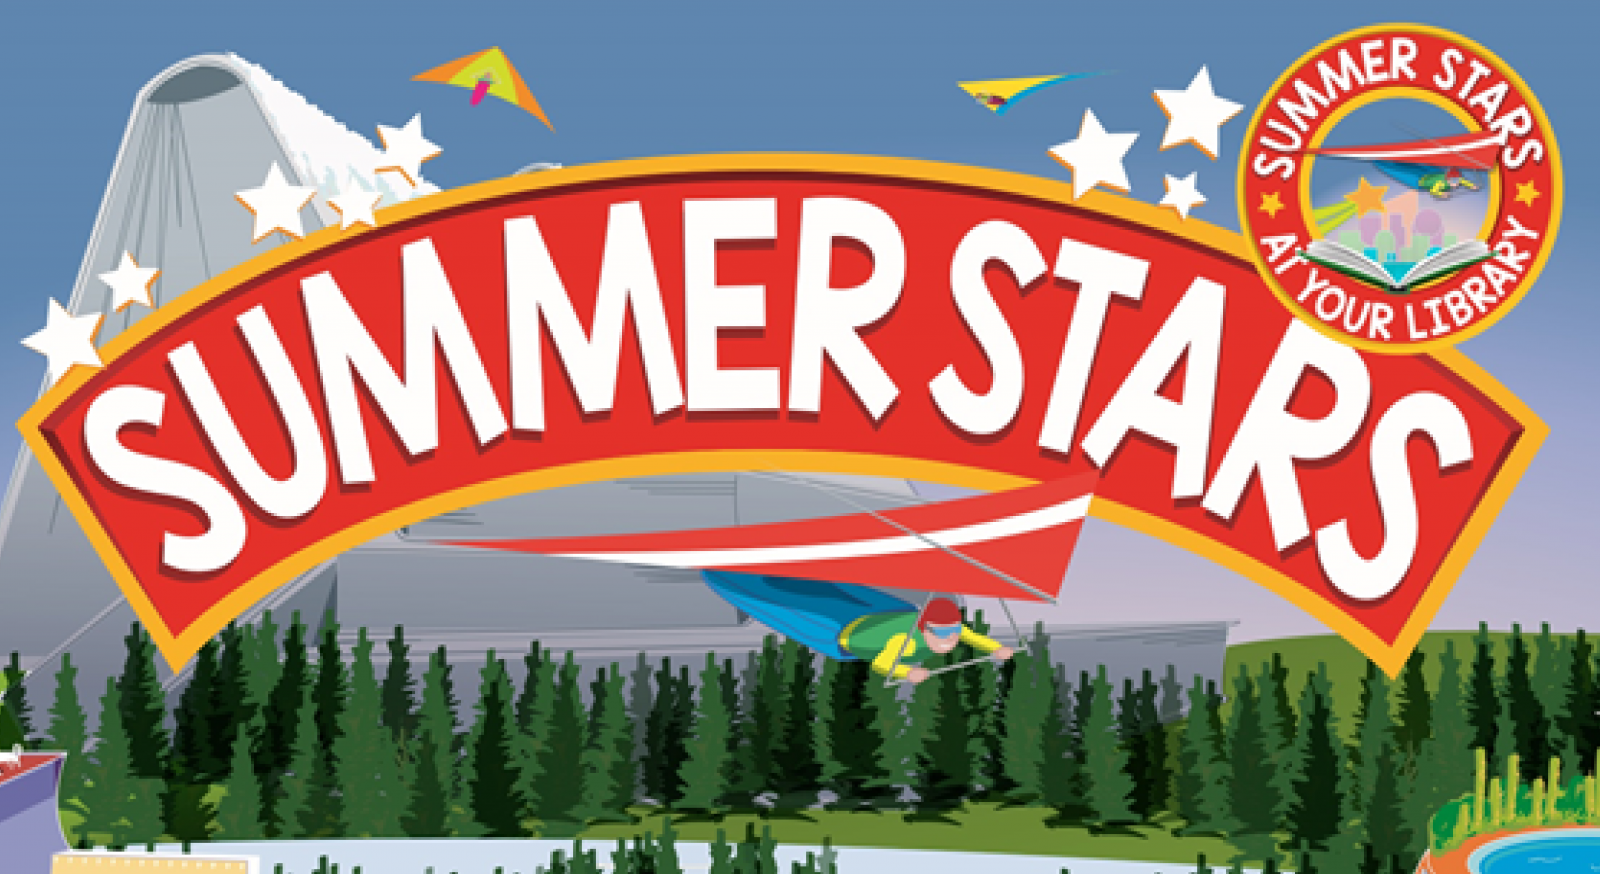 More about Summer Stars